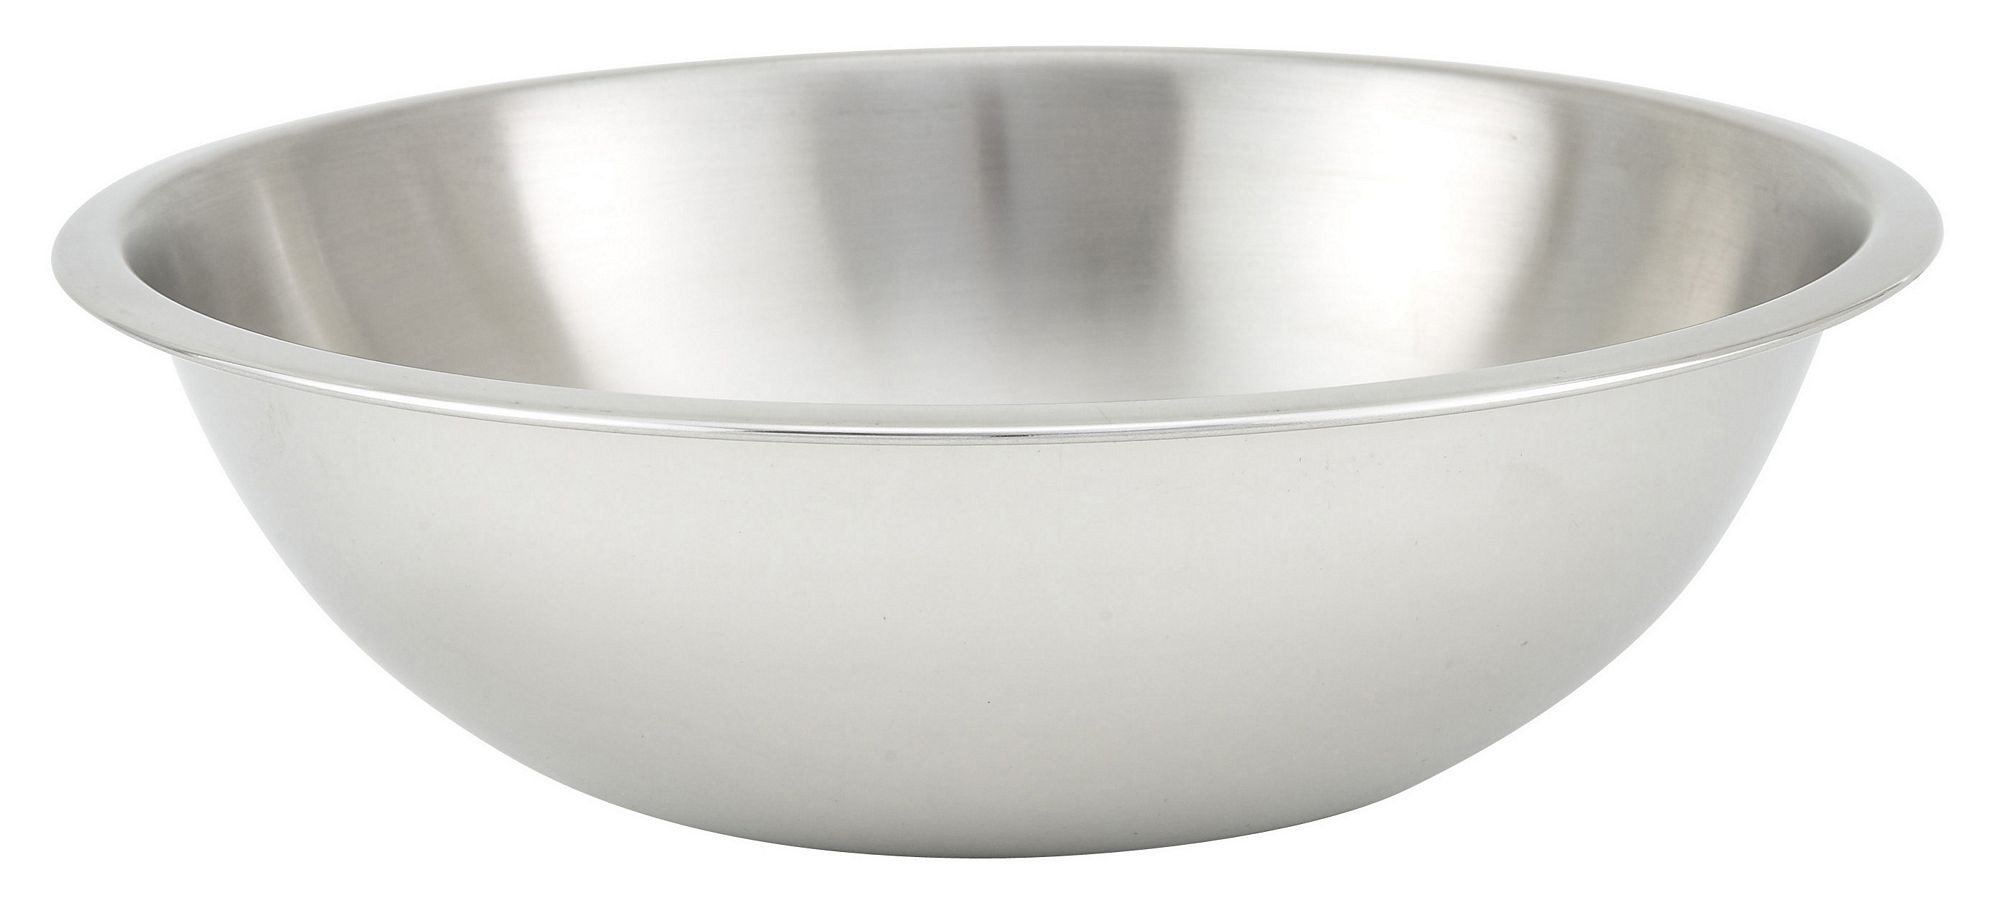 Winco MXHV-800 Heavy Duty Stainless Steel 8 Qt Mixing Bowl